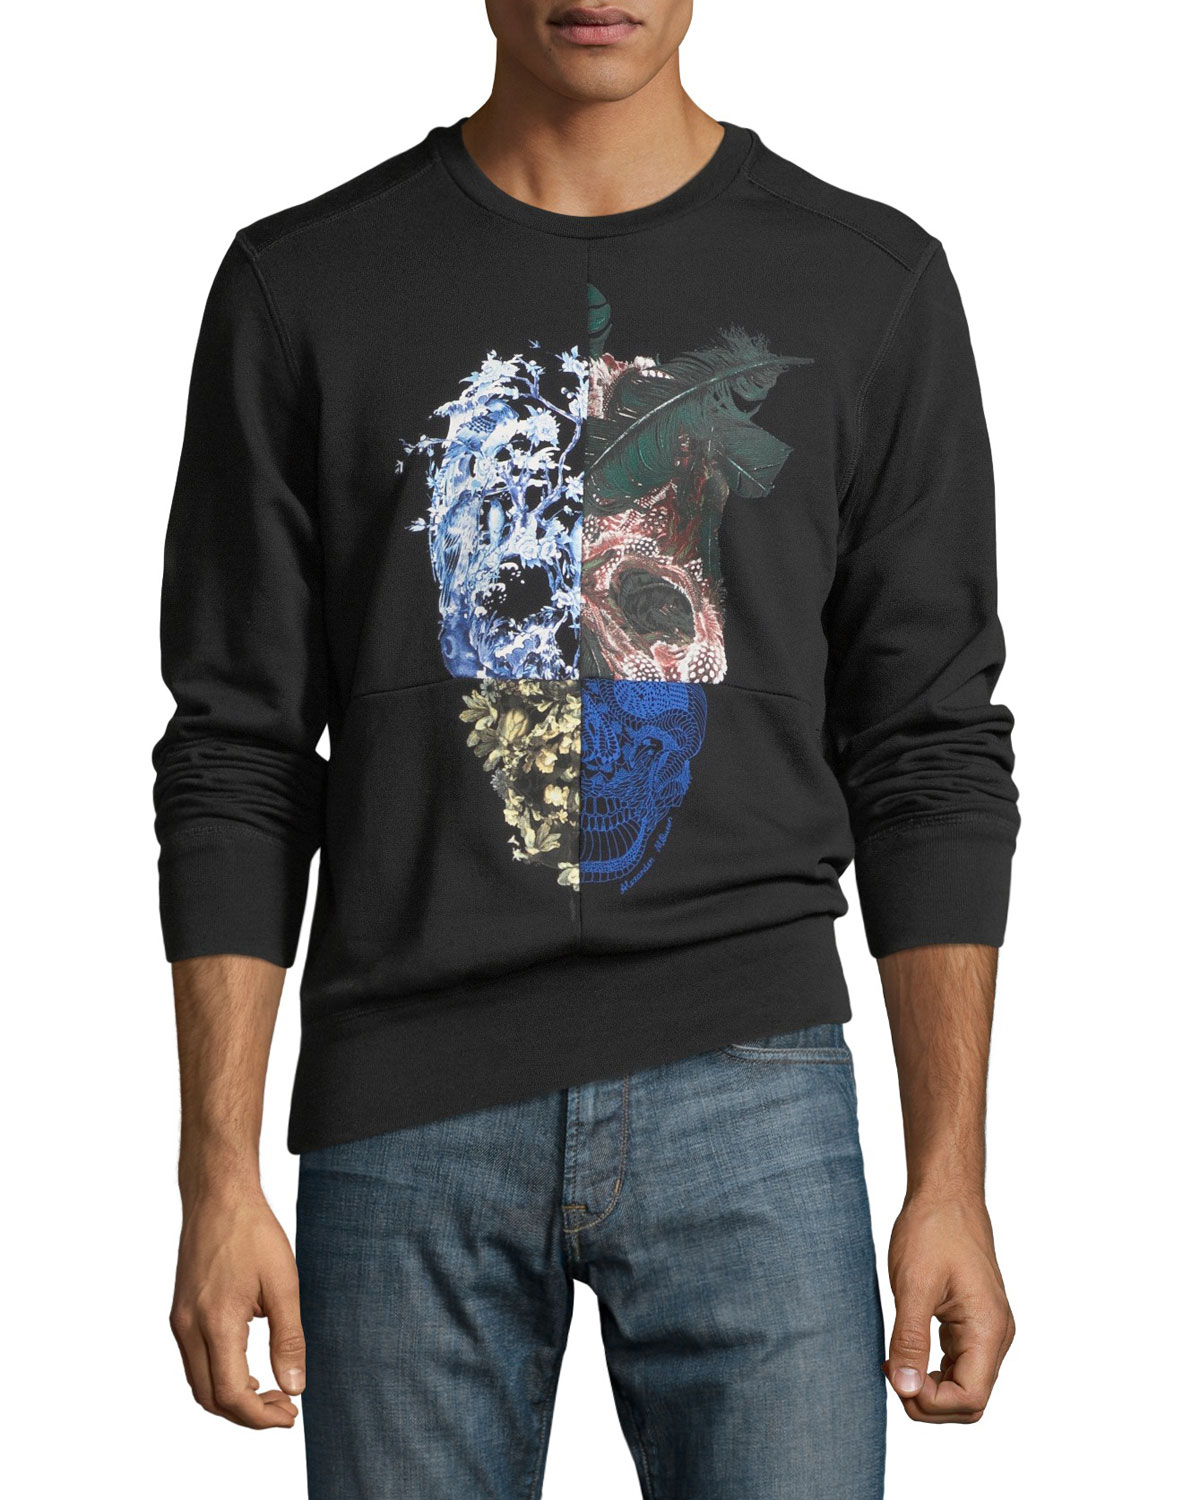 Paneled Skull Graphic Sweatshirt